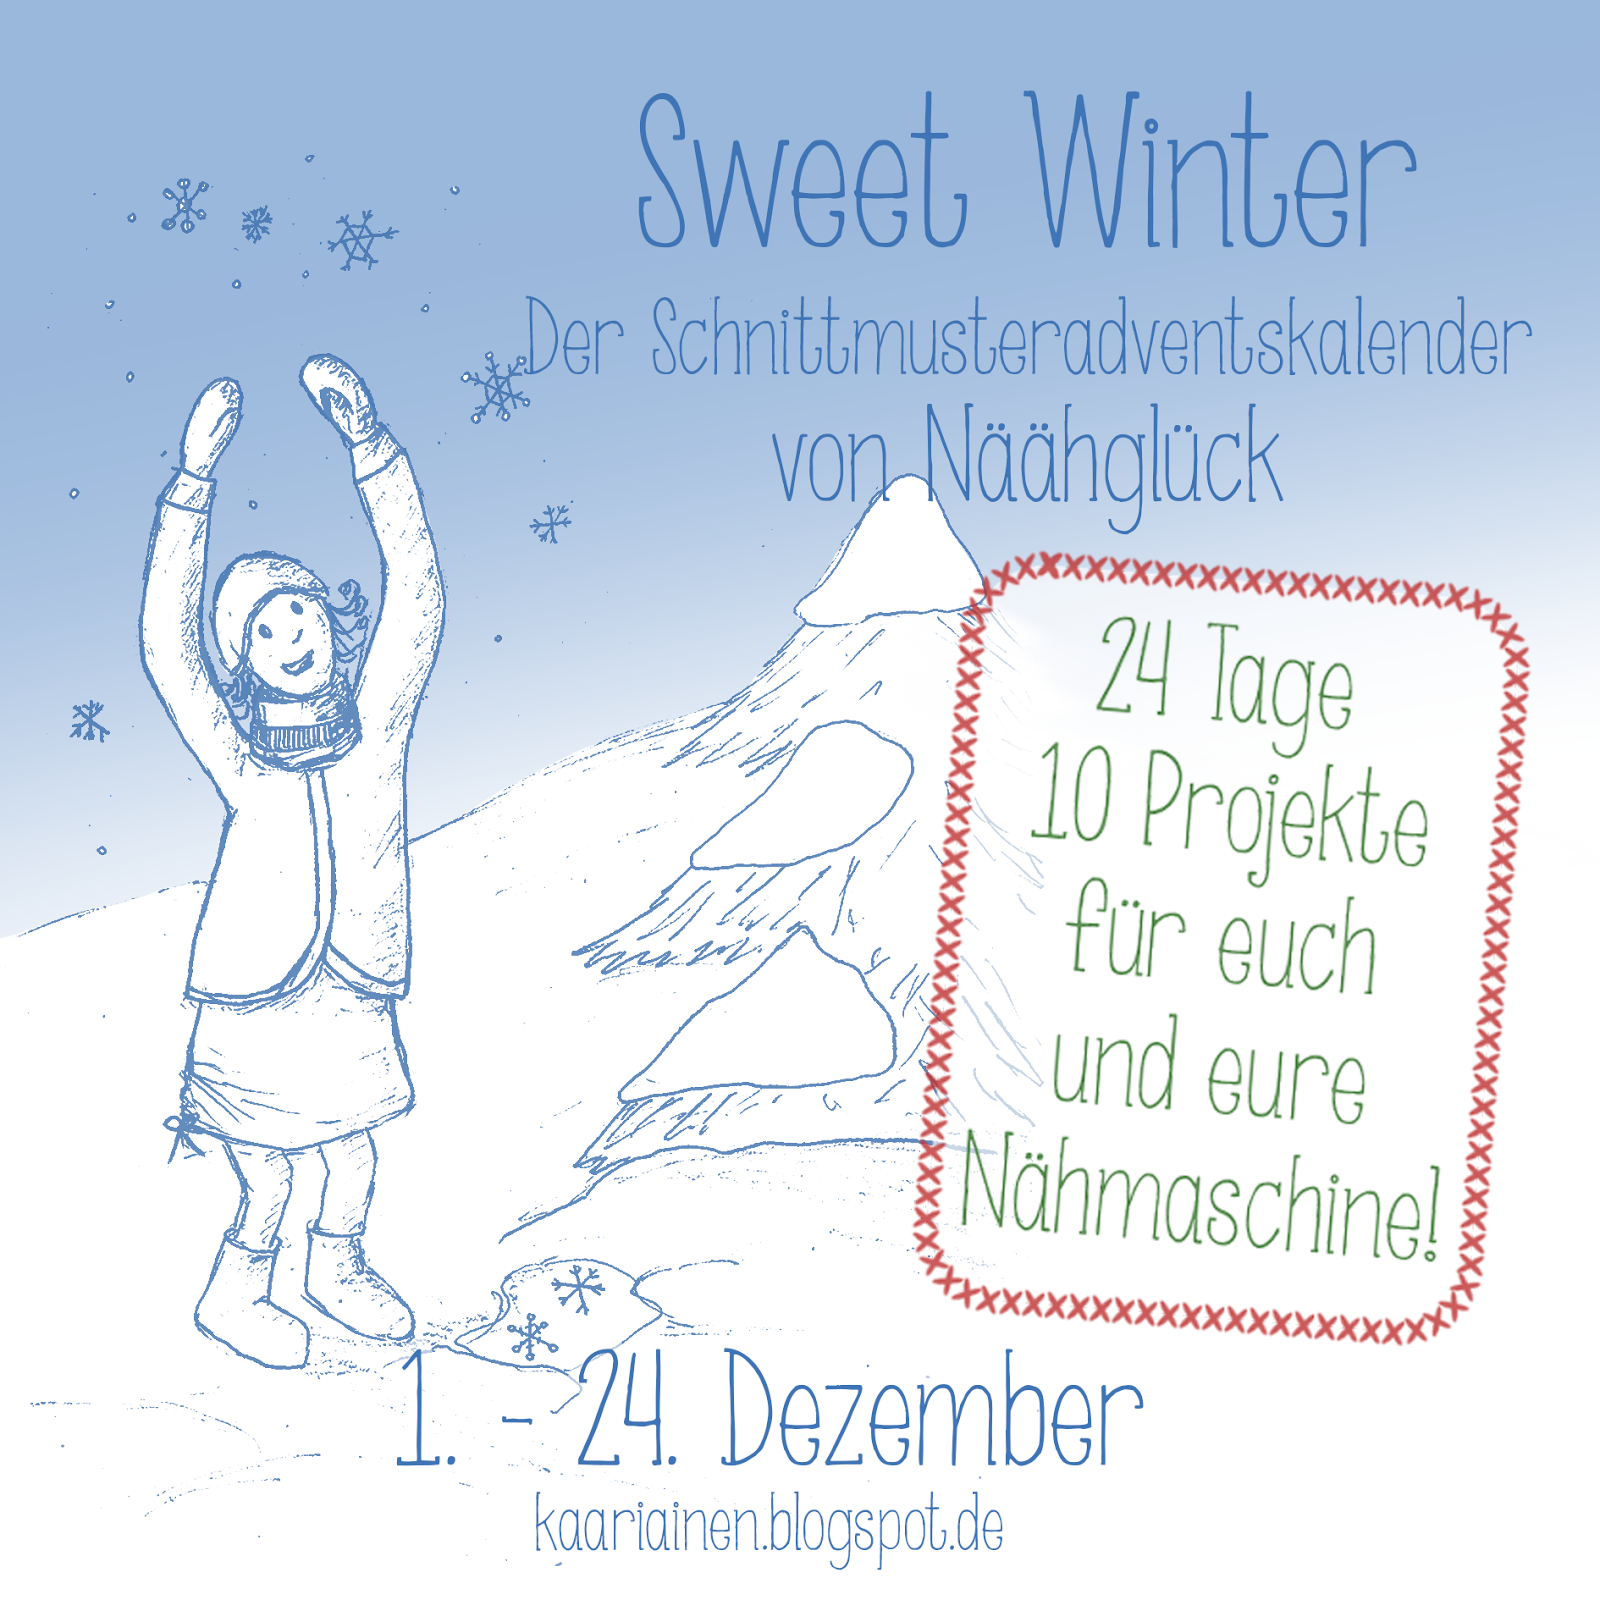 http://kaariainen.blogspot.de/search/label/Adventskalender